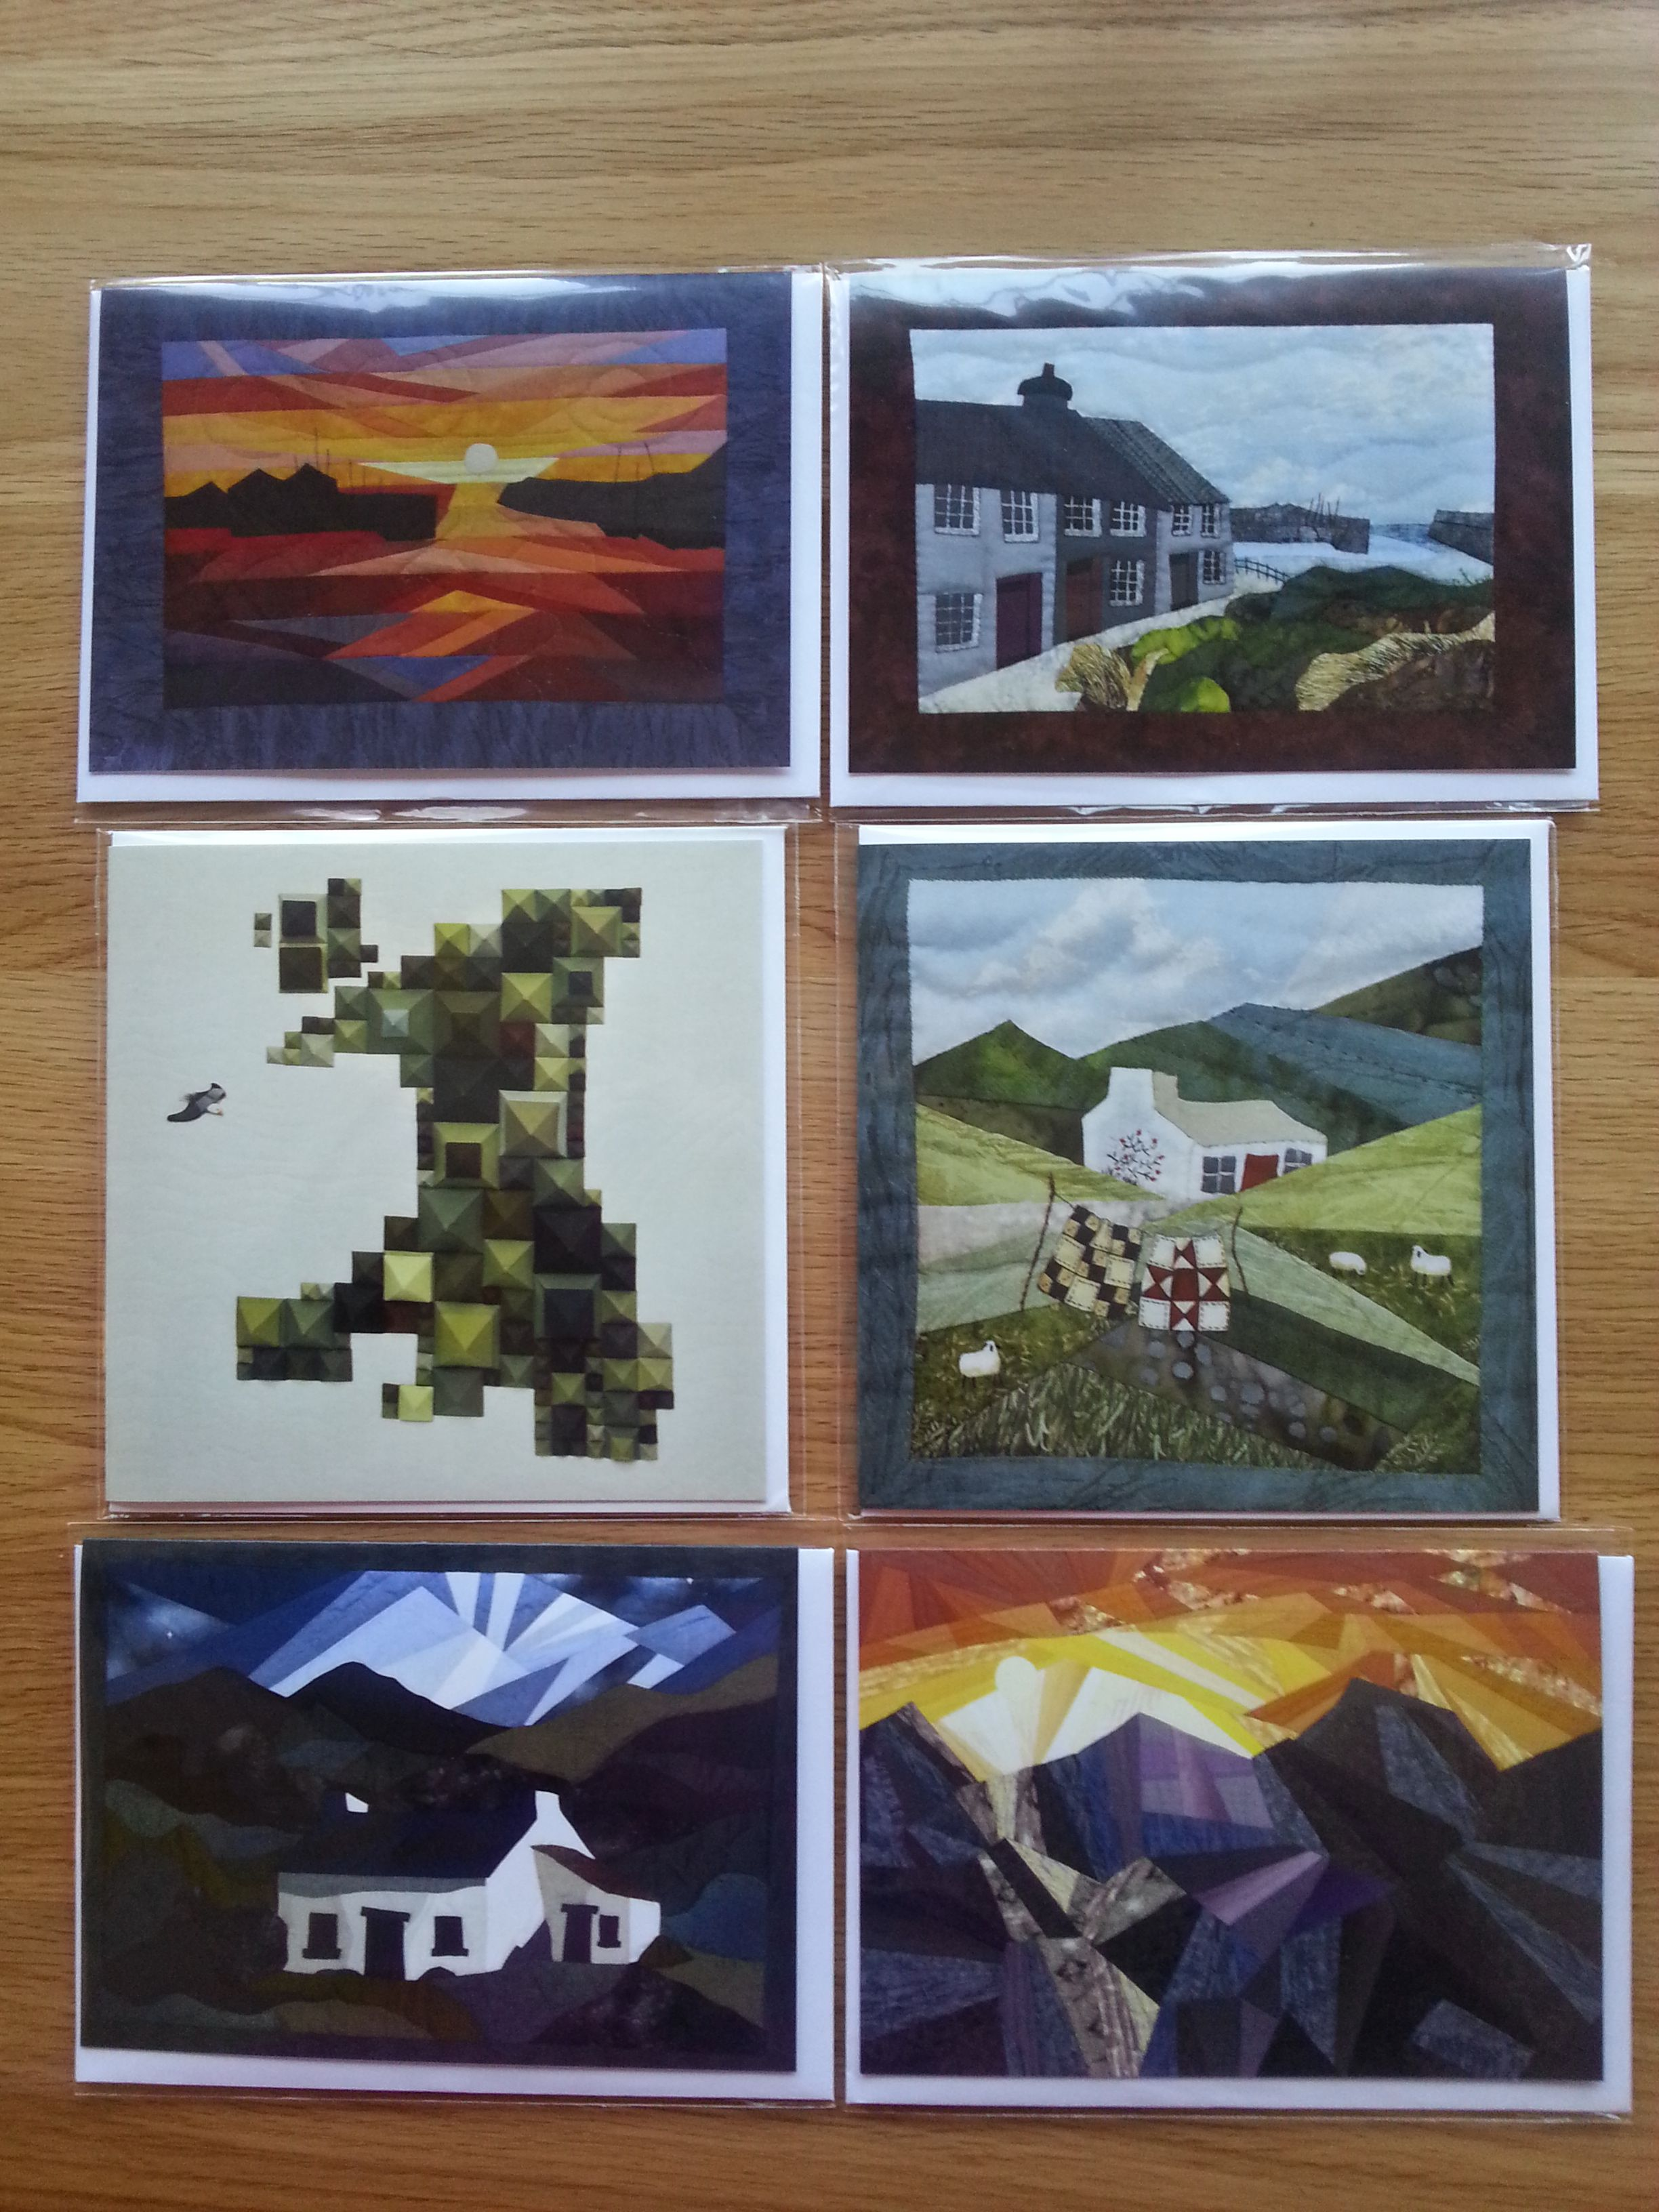 A collection of greetings cards showing unique welsh landscape a collection of greetings cards showing unique welsh landscape patchwork designs very eye catching kristyandbryce Image collections